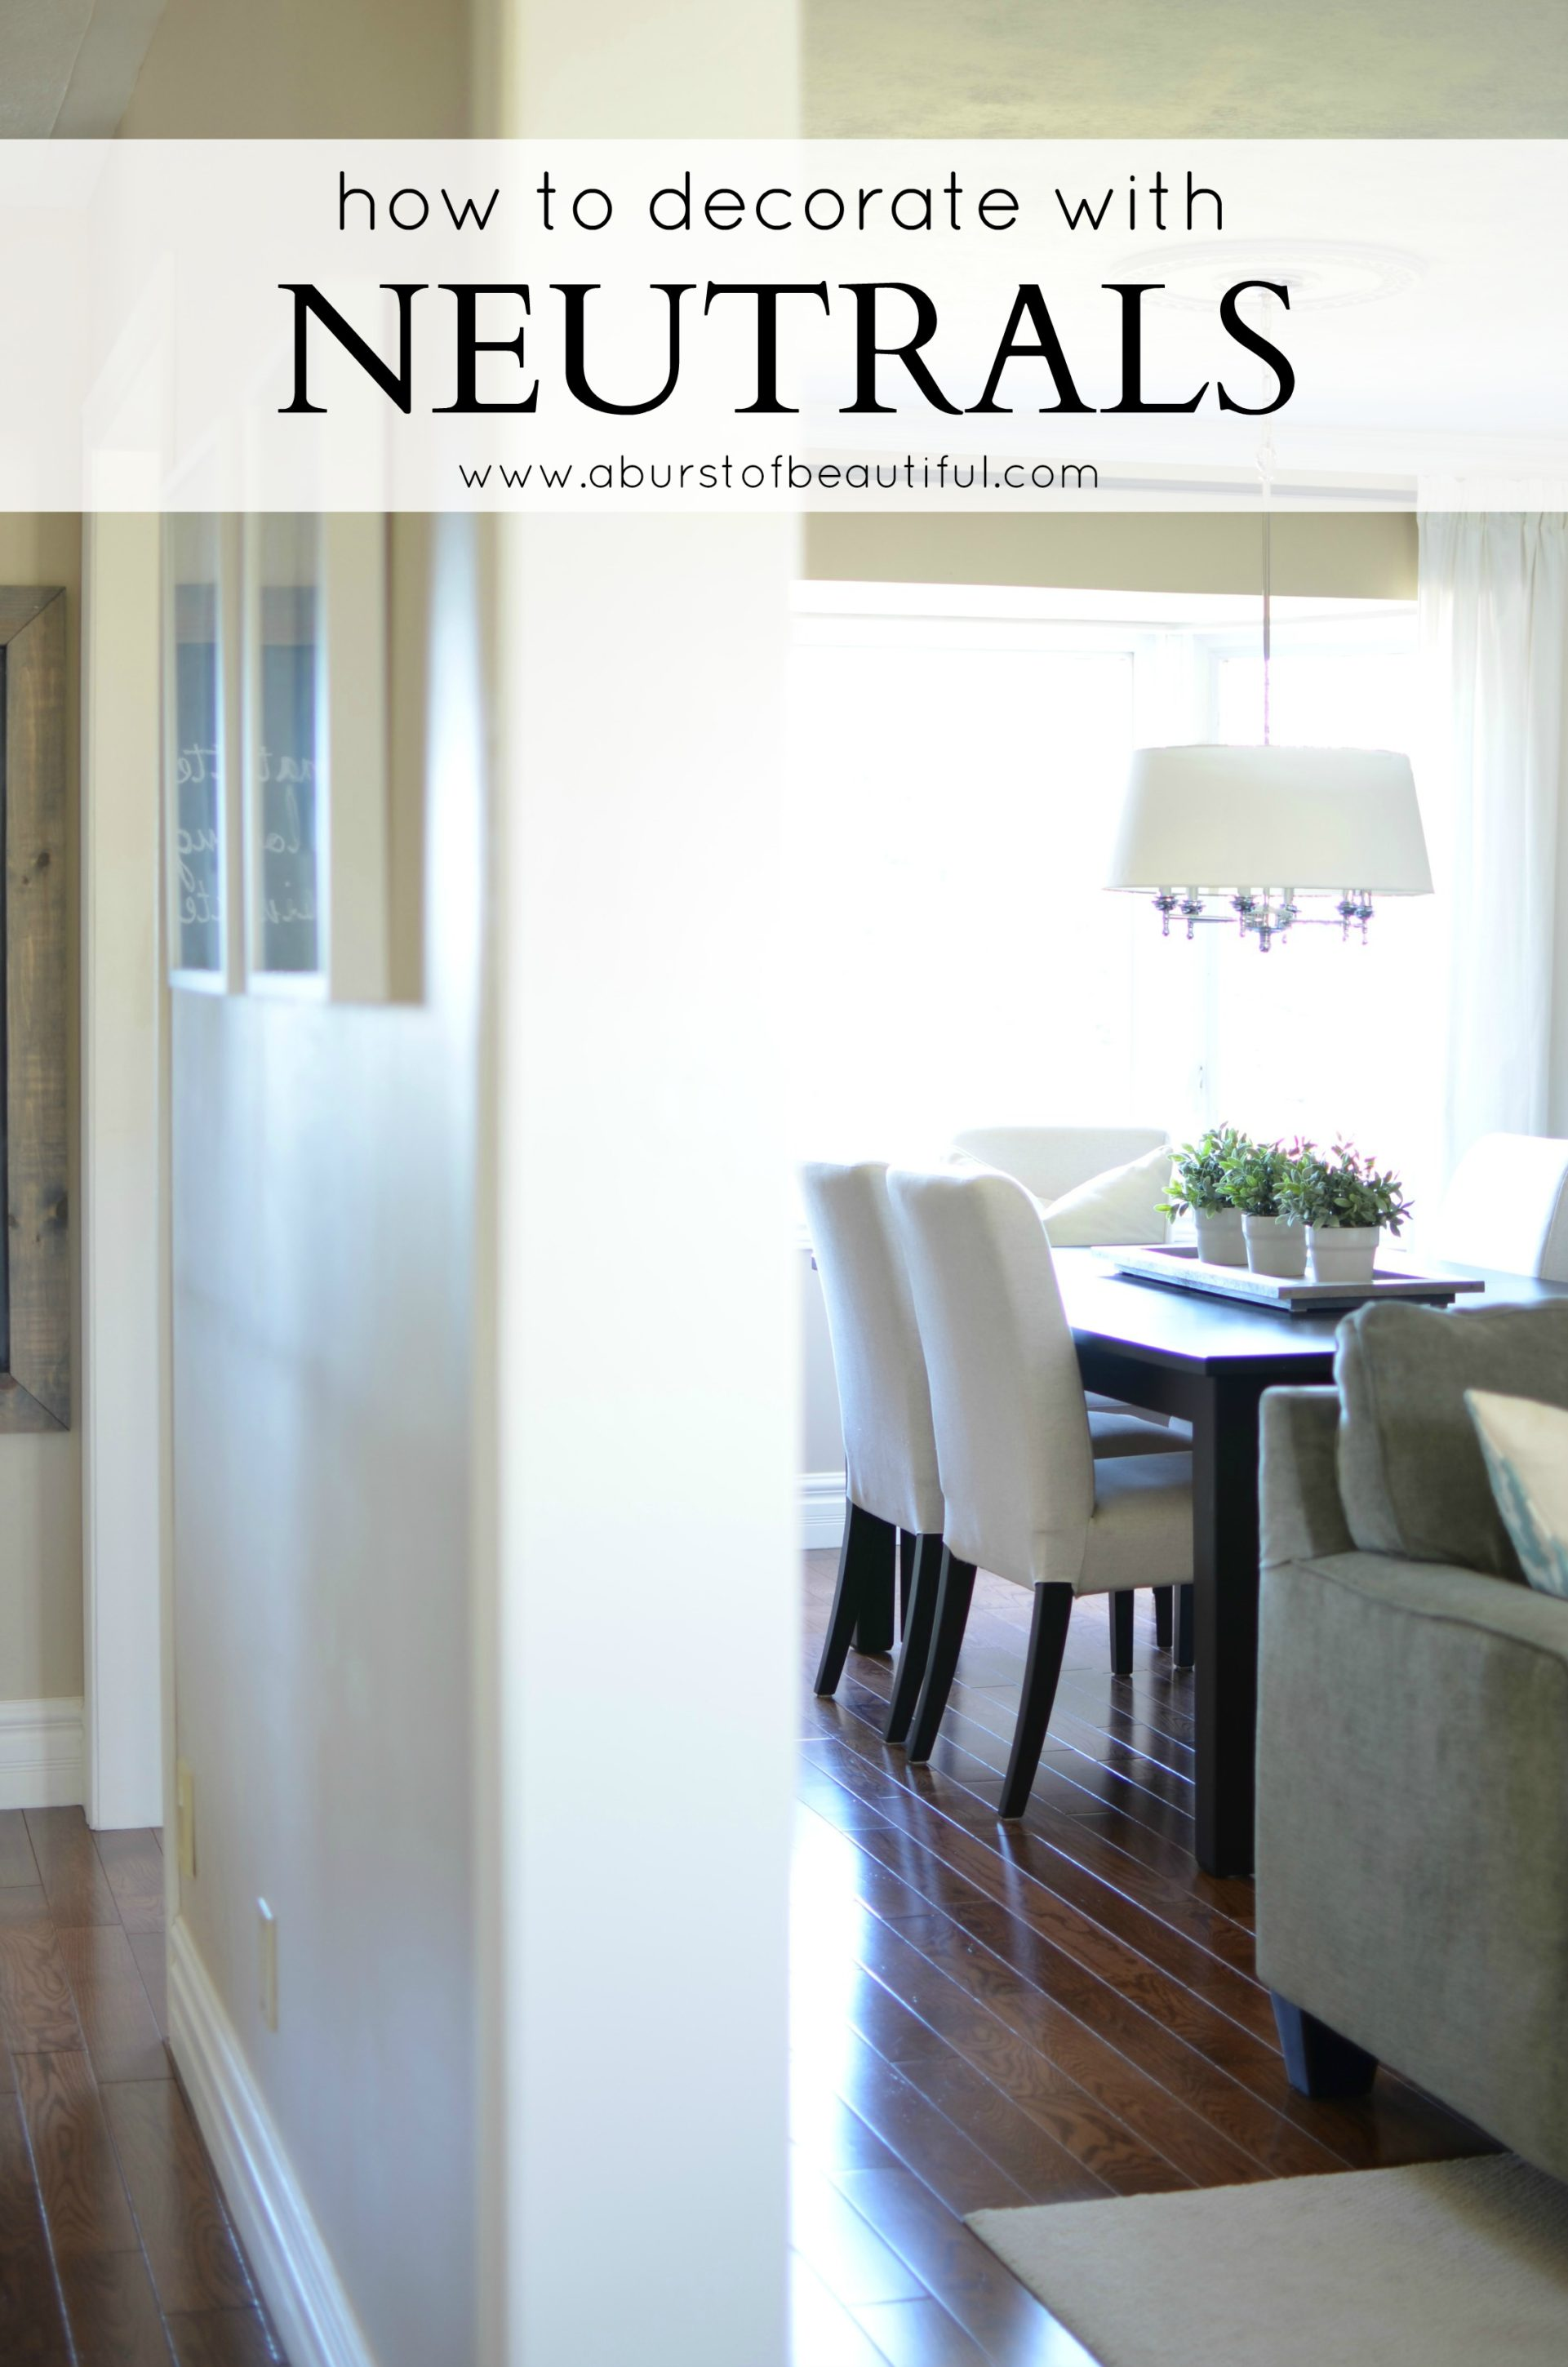 Create a cozy and inviting home while decorating with neutrals with these easy and simple decor tips   A Burst of Beautiful